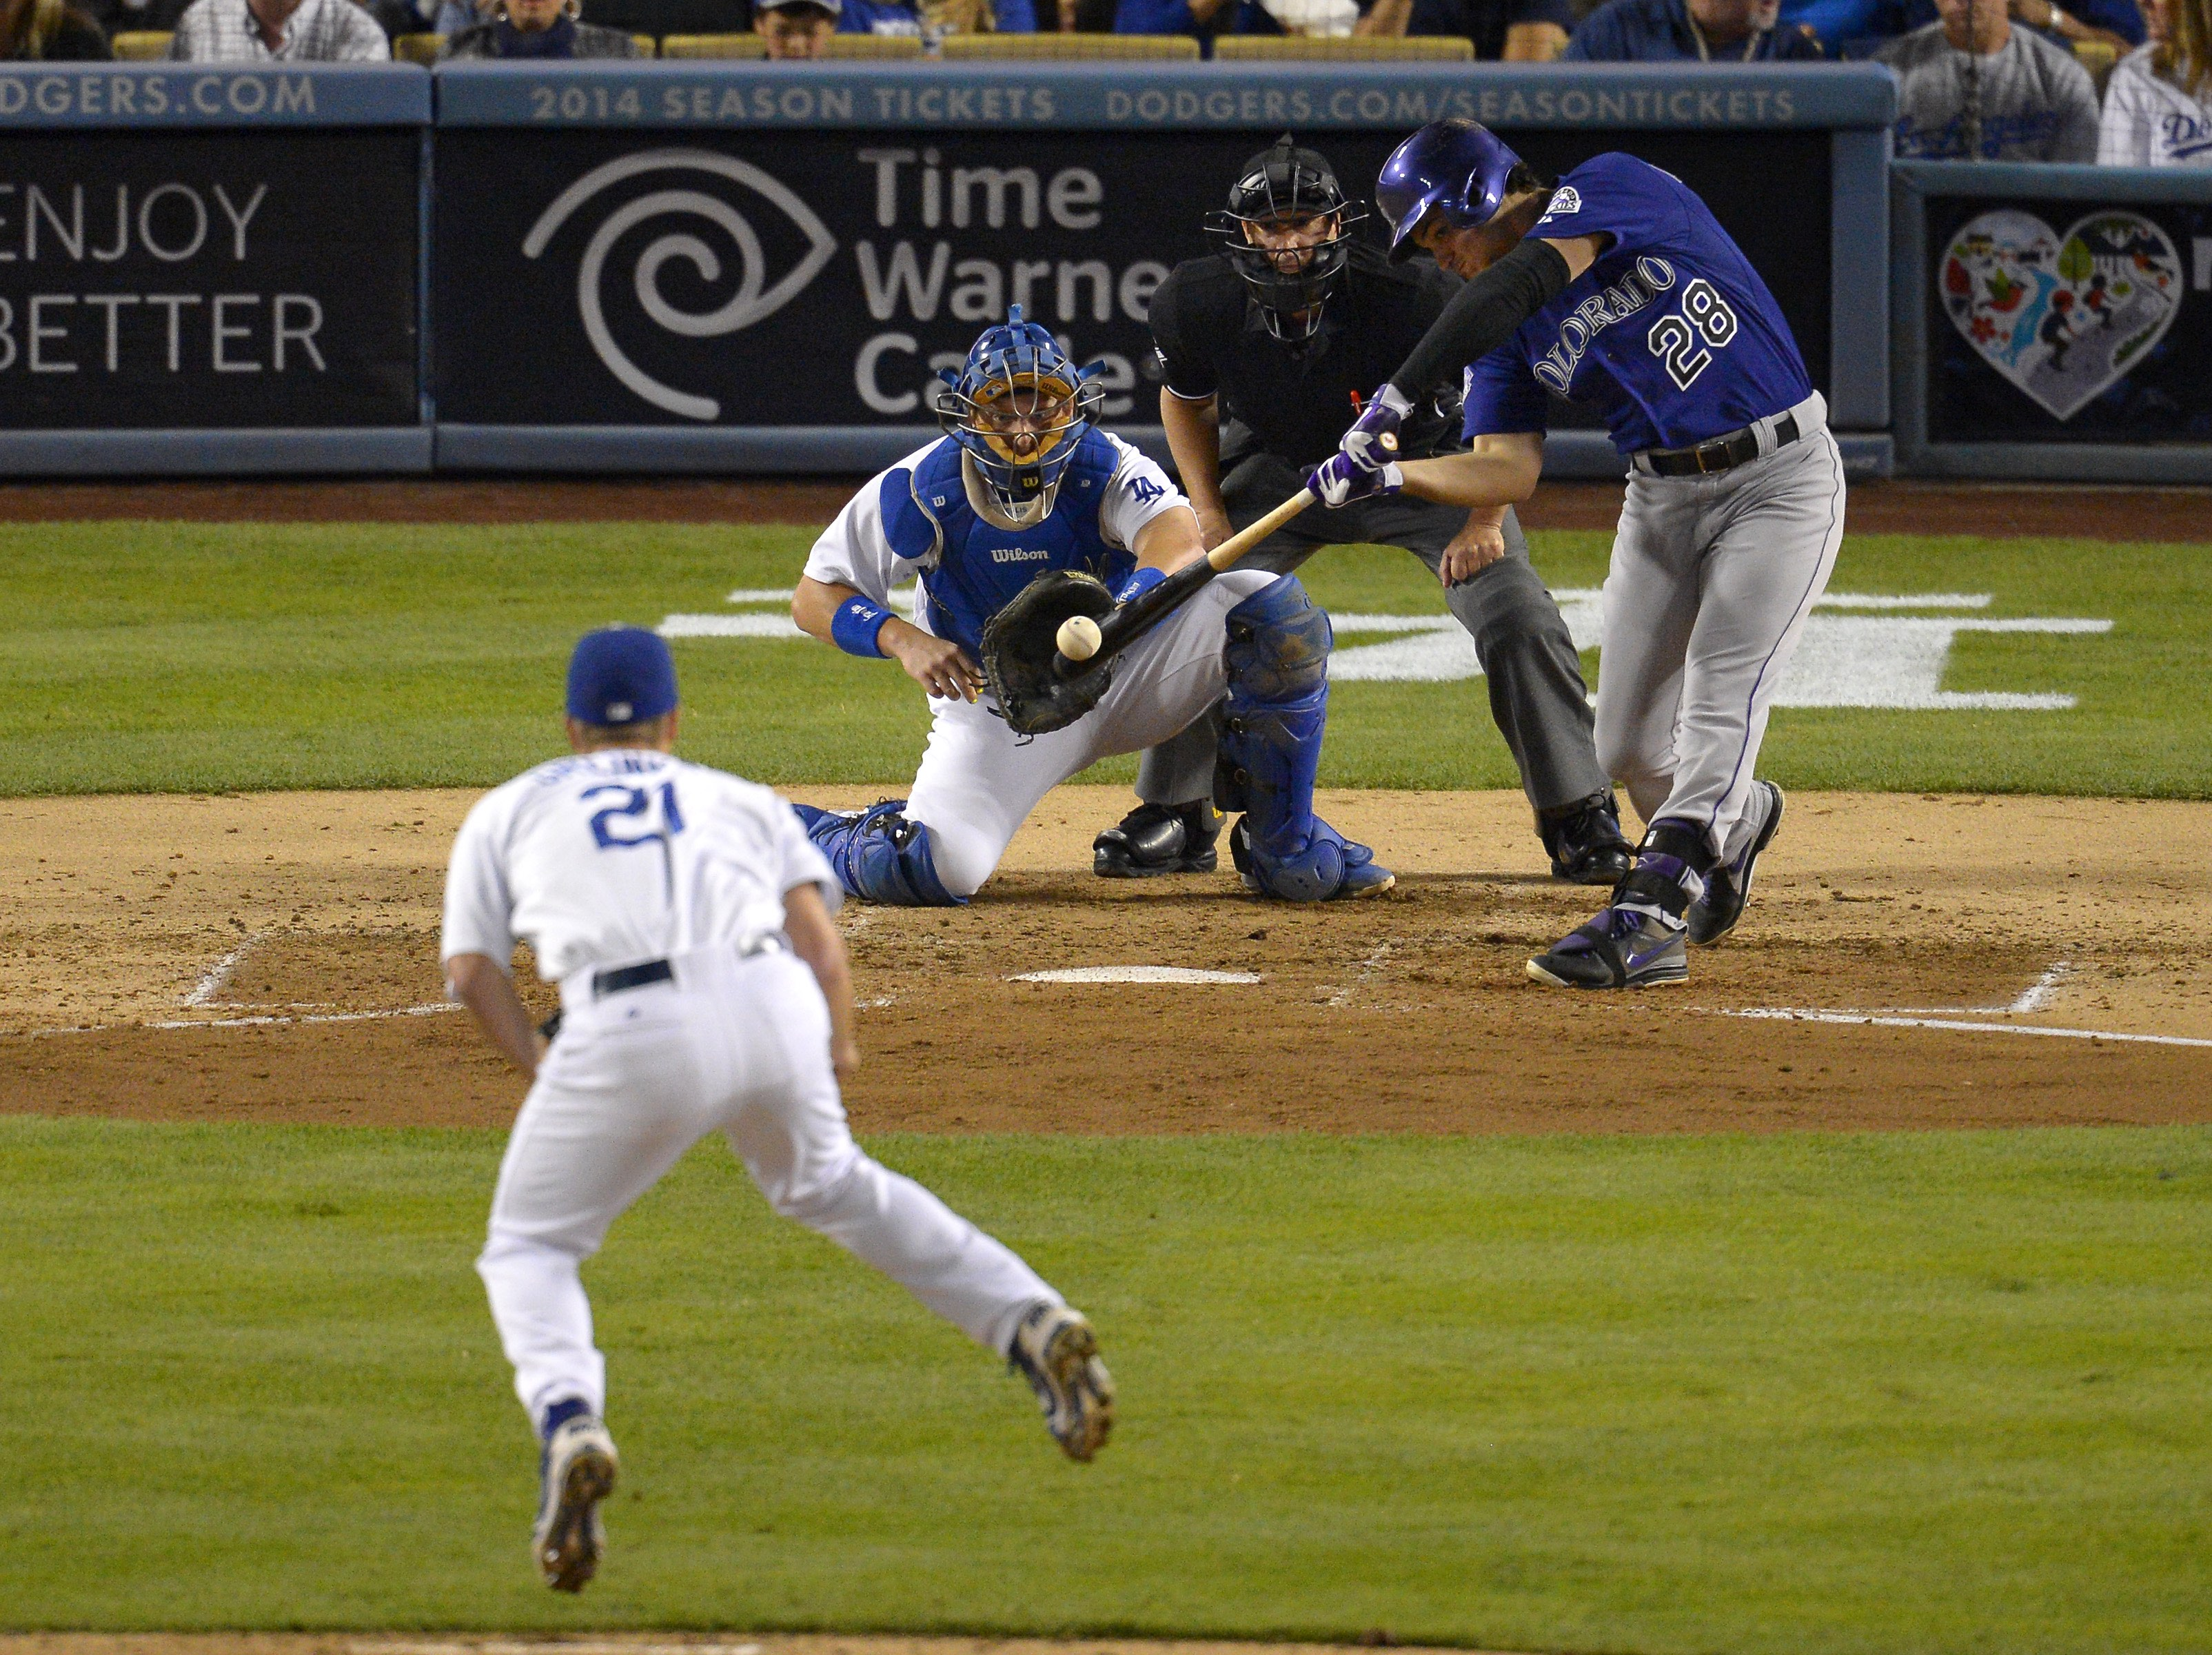 Colorado Rockies' Nolan Arenado, right, hits an RBI double as Los Angeles Dodgers starting pitcher Zack Greinke, left, and catcher A.J. Ellis look on along with home plate umpire Jim Reynolds during the fourth inning of their baseball game, Saturday, Sept. 28, 2013, in Los Angeles. (AP Photo/Mark J. Terrill)